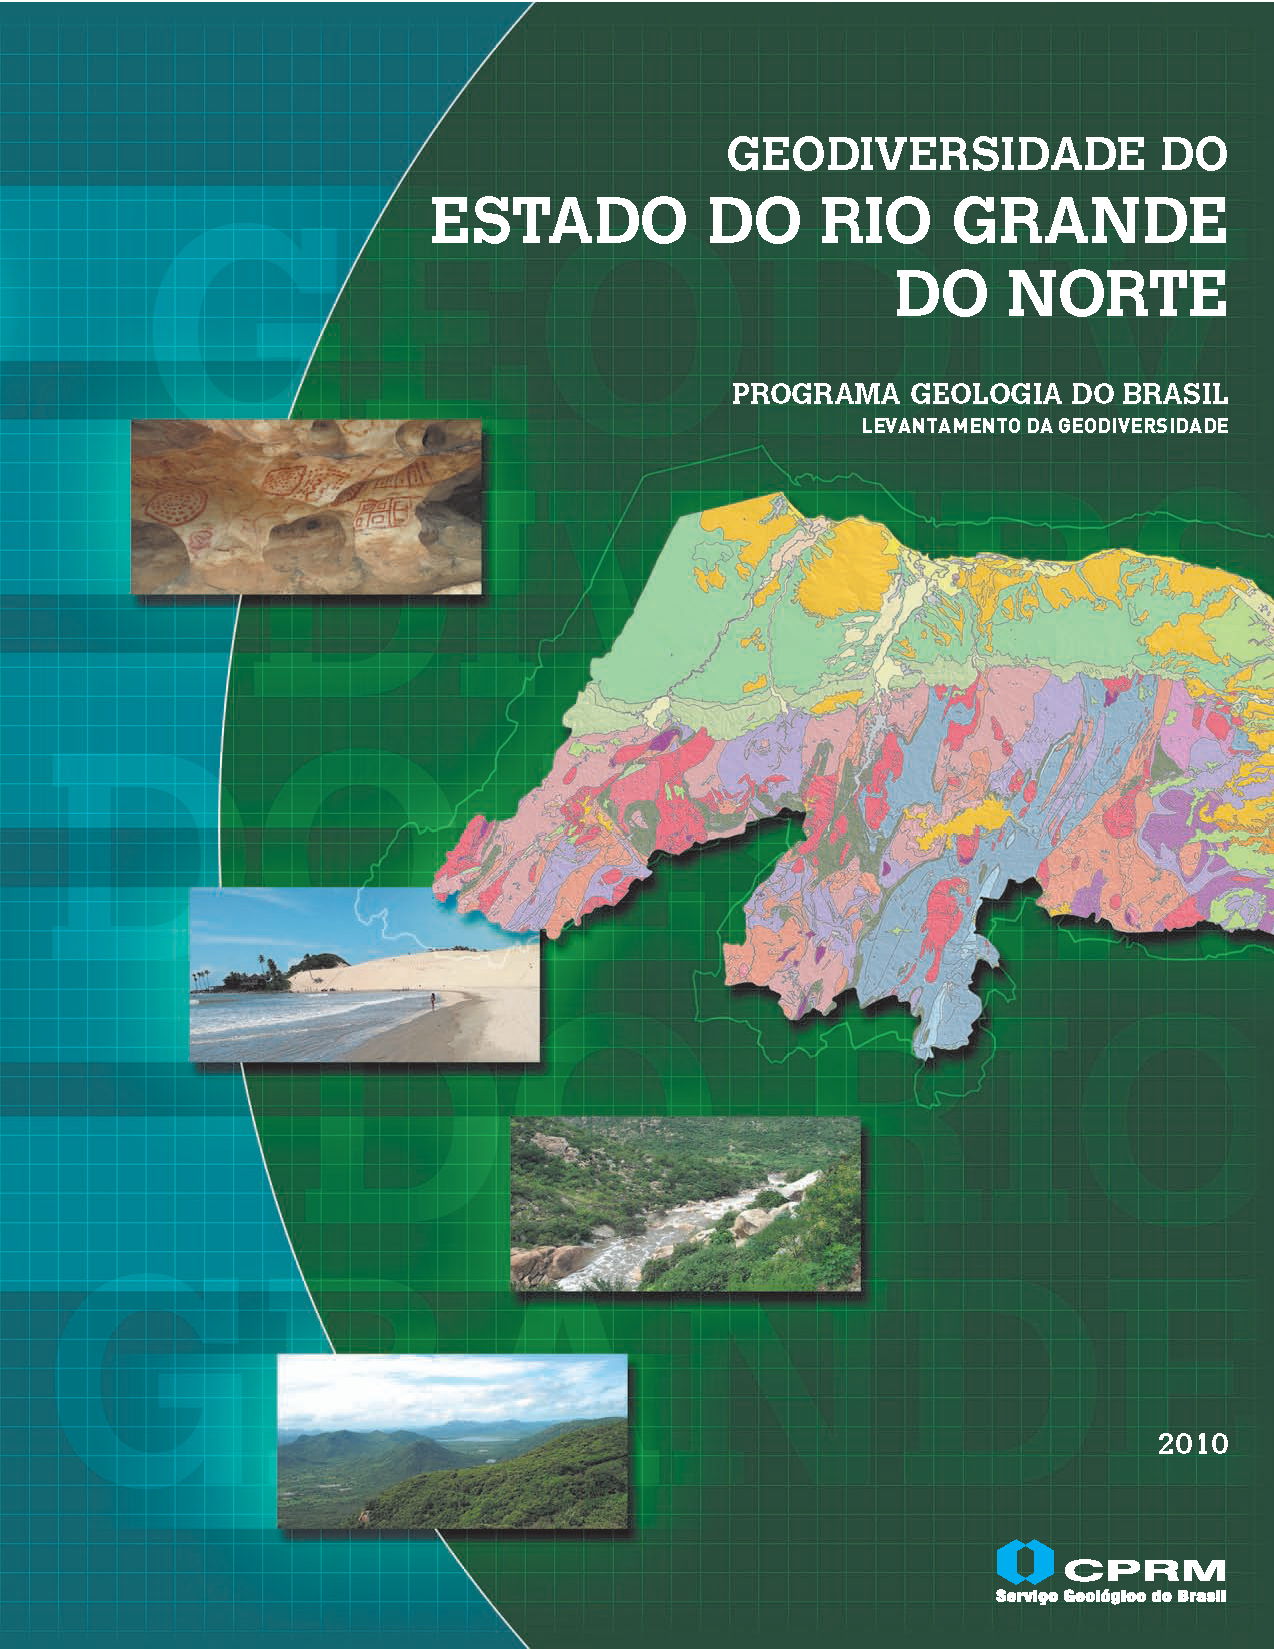 Capa da Geodiversidade do Estado do Rio Grande do Norte